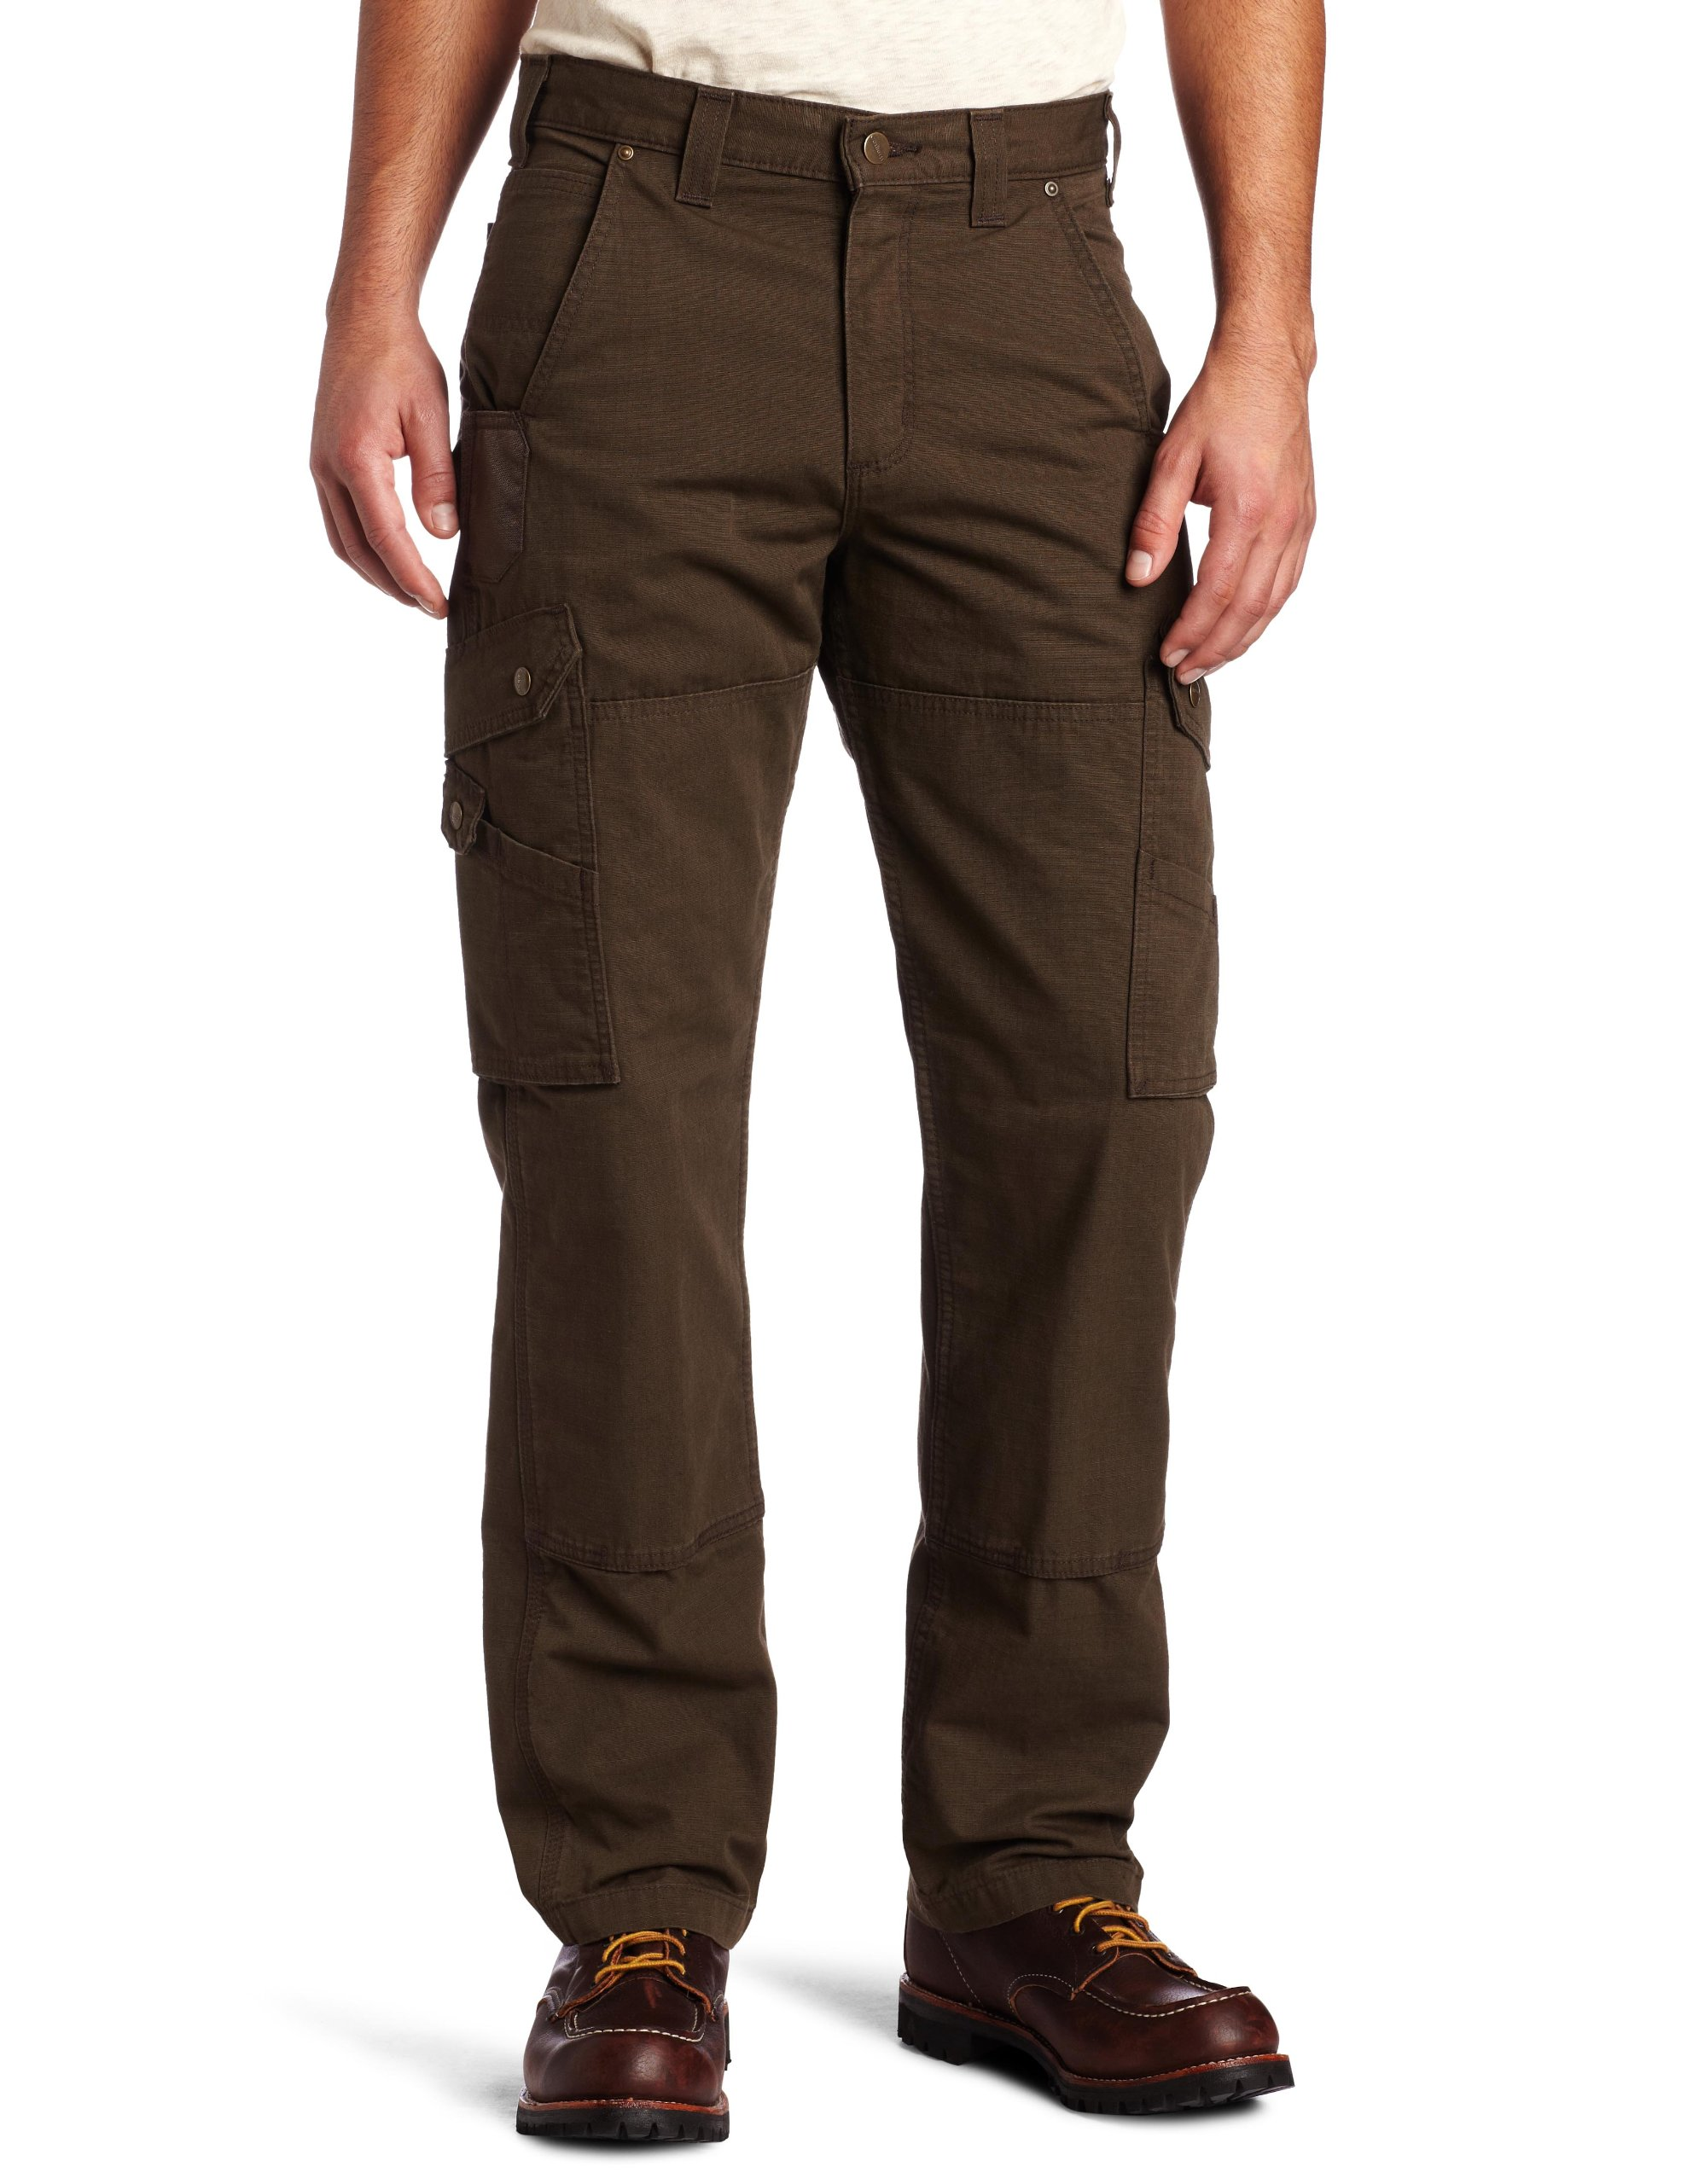 Carhartt Men's Cotton Ripstop Relaxed Fit Work Pant,Dark Coffee,34 x 30